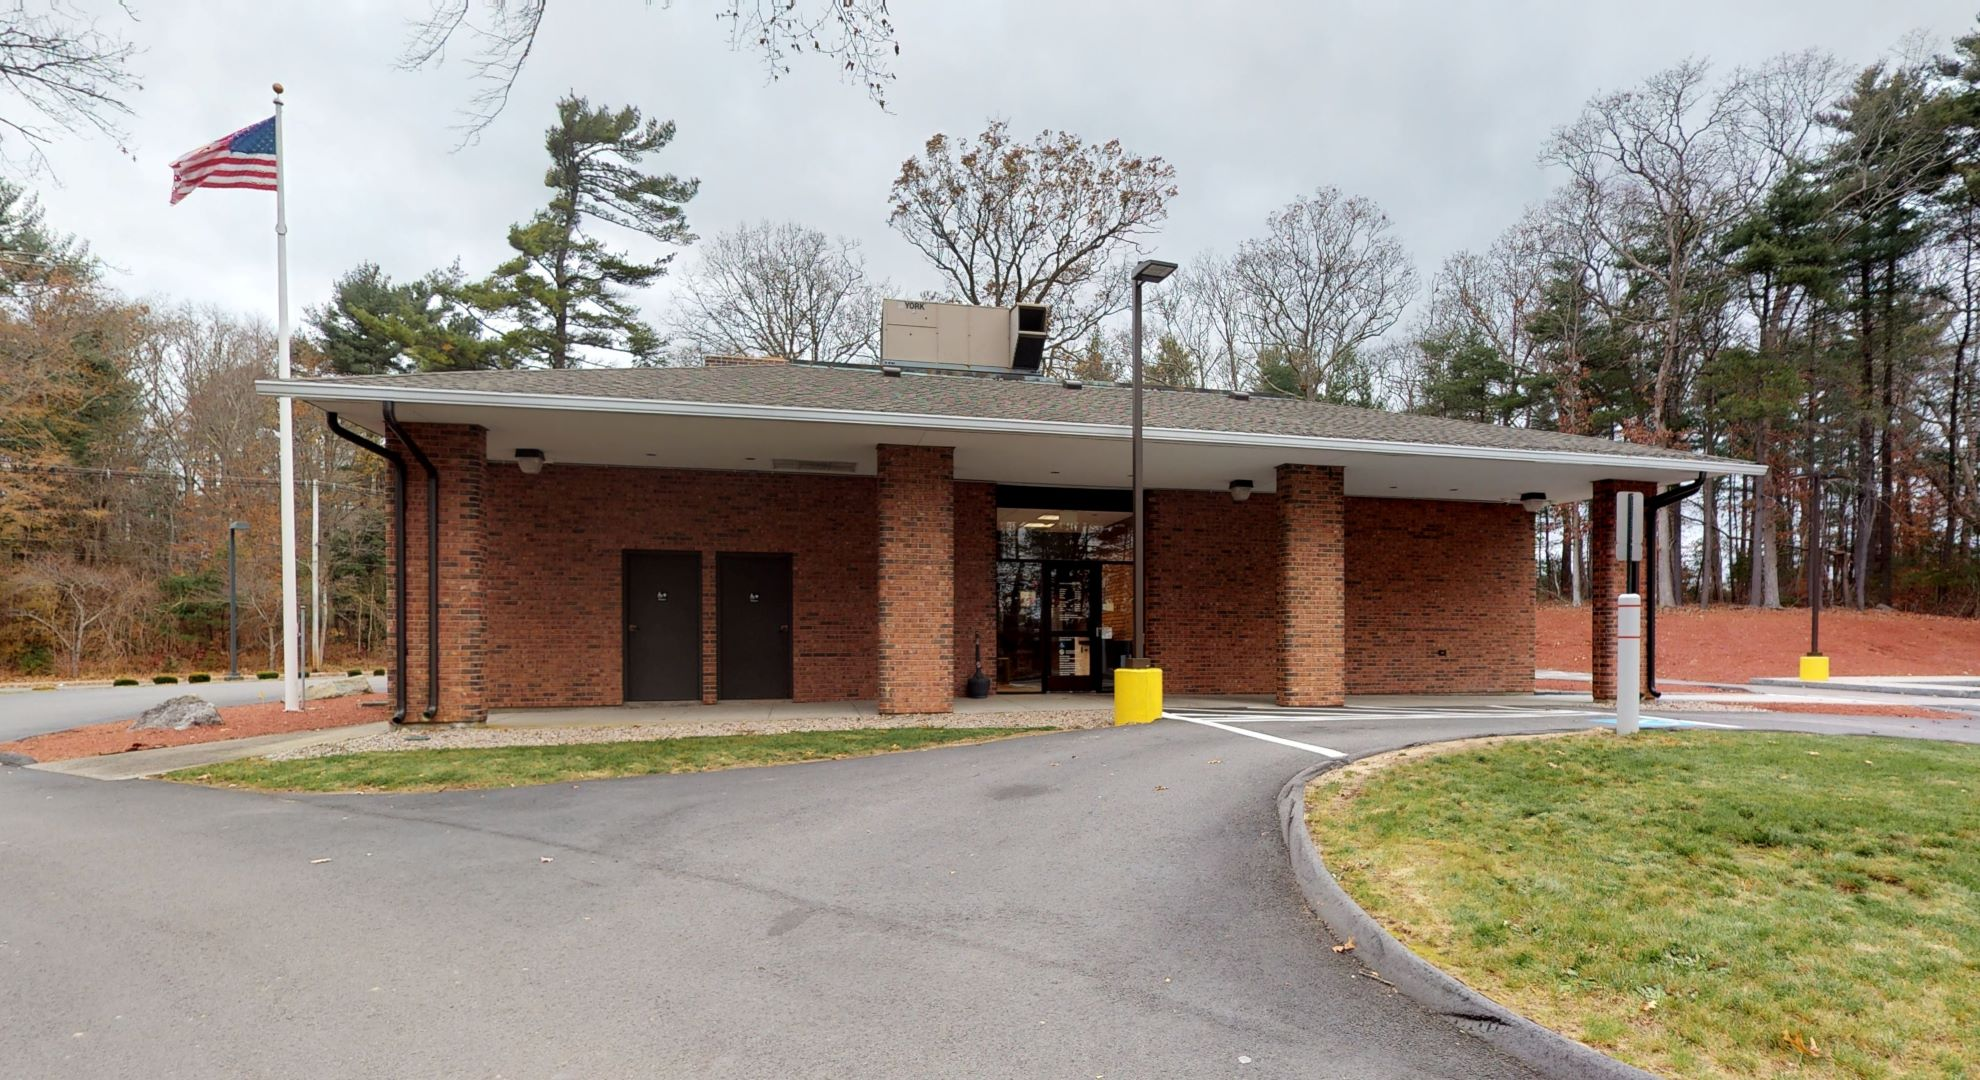 Bank of America financial center with drive-thru ATM and teller | 71 Faunce Corner Rd, North Dartmouth, MA 02747